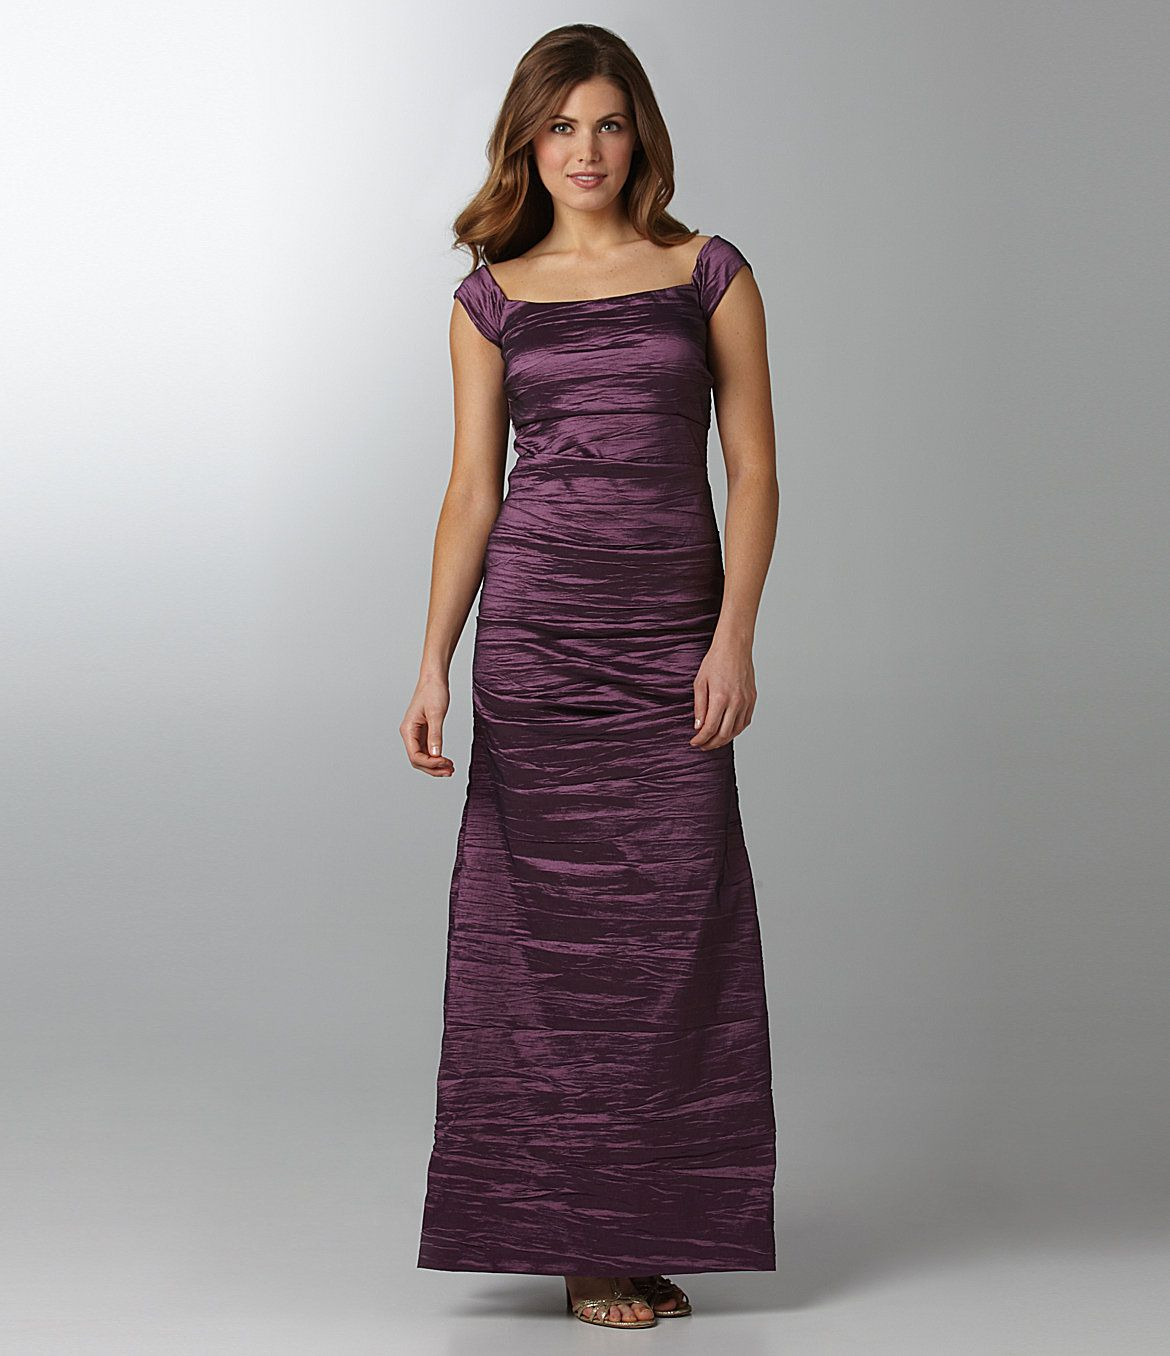 Wedding dresses for grandmother of the groom  Pretty purple  Mother of the Bride  Pinterest